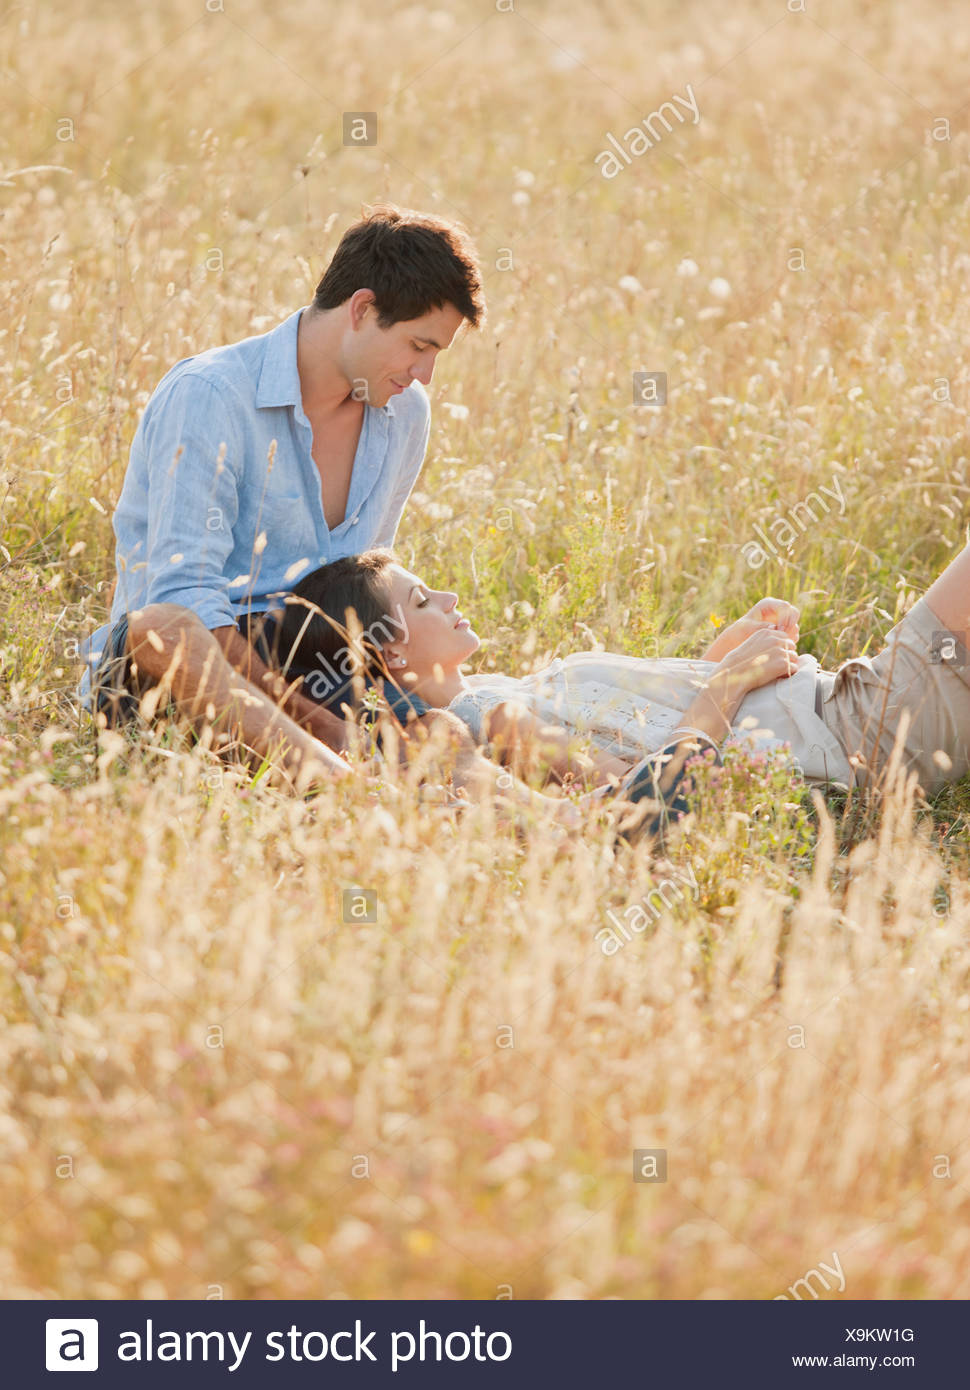 Smiling couple relaxing in wheatfield Stock Photo